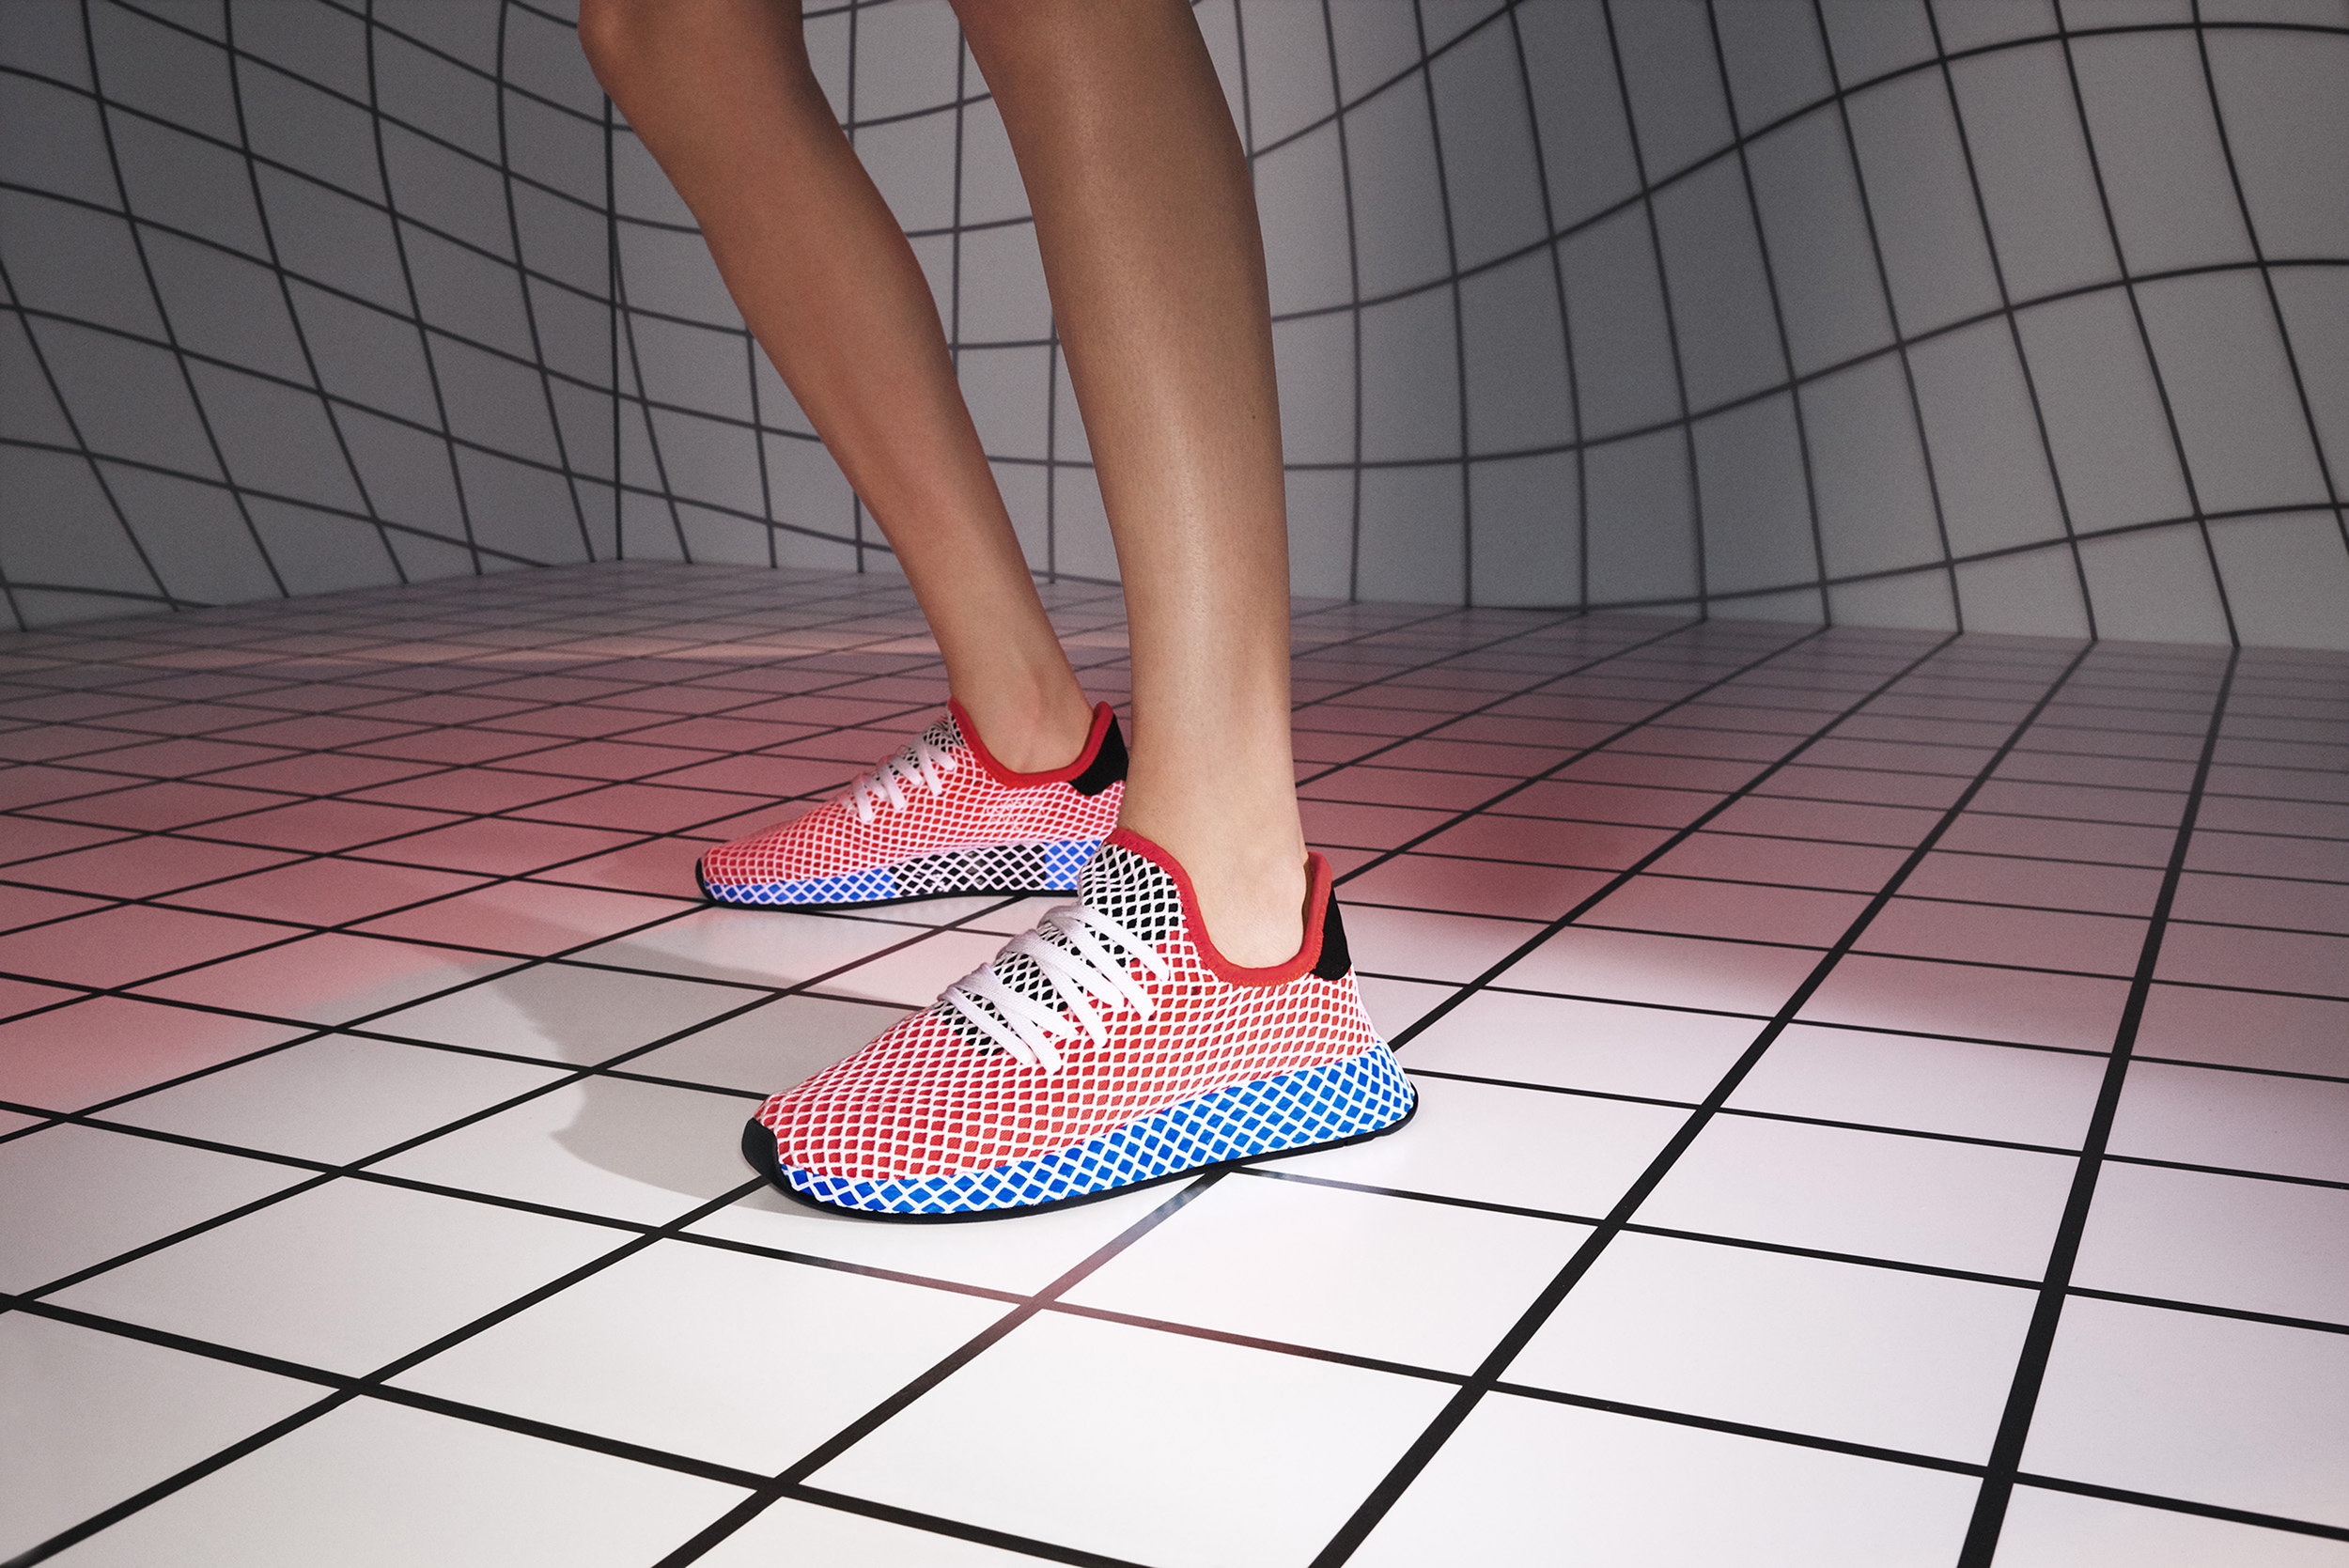 SS18_DEERUPT_QC2624_AC8466_DIRECTIONAL_ON_FOOT_13_012_RGB.jpg